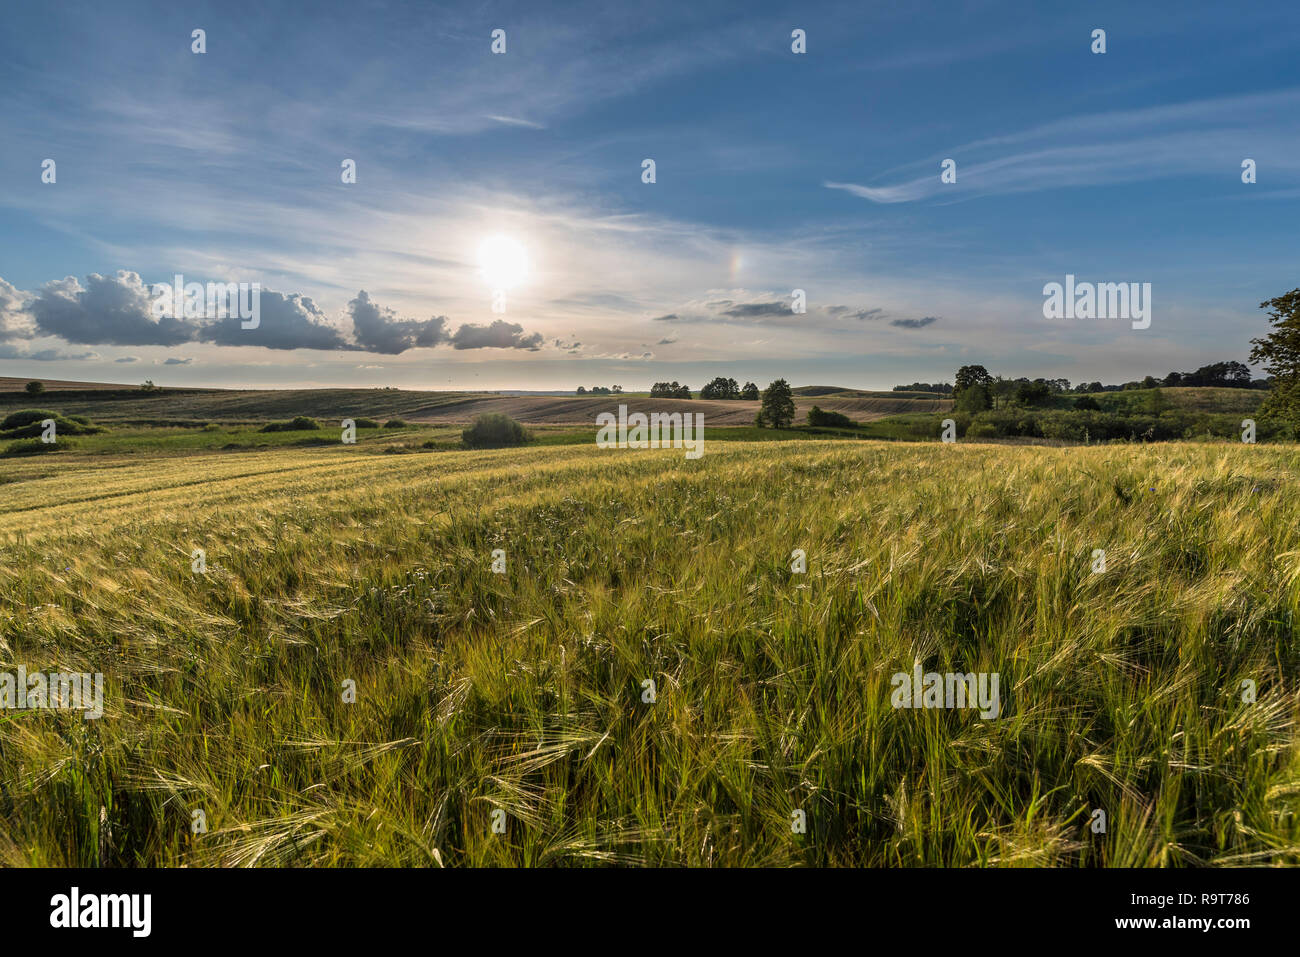 Summer landscape with fields of golden cereals amidst hills under a blue cloudy sky. Poland, Warmia. - Stock Image